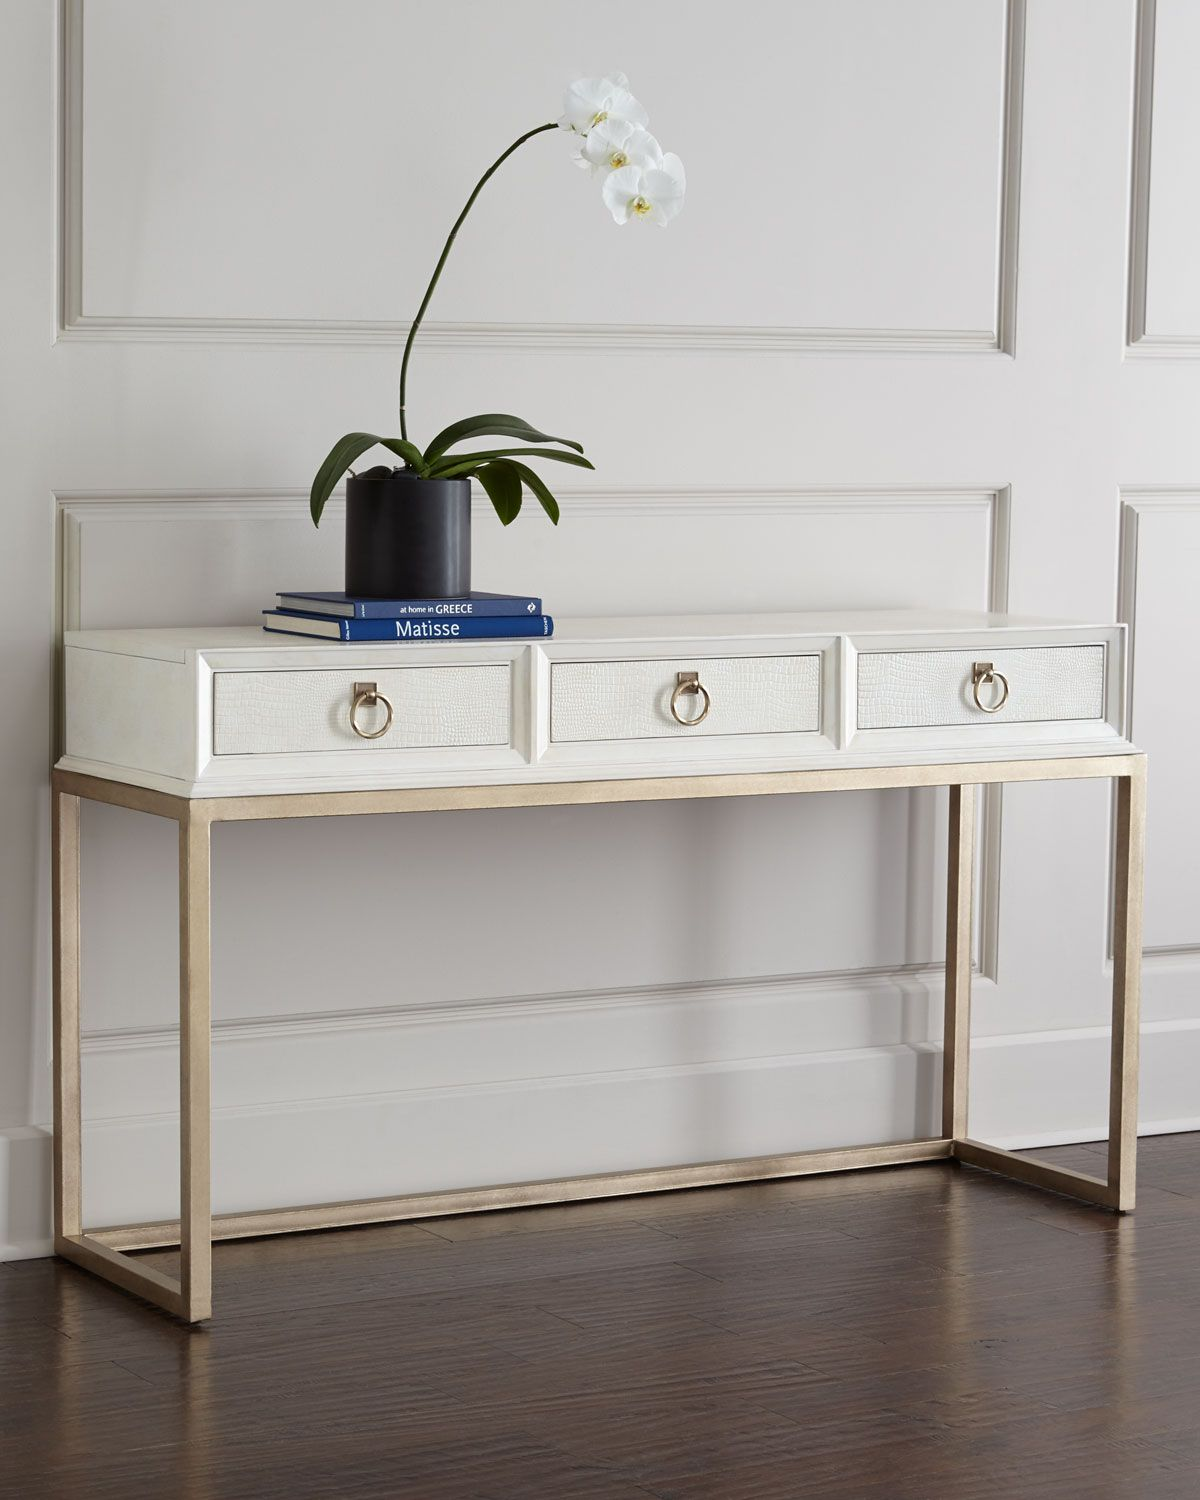 Daisy Console Horchow 1299 00 Copy Cat Chic At Z Gallerie Hayden Table 999